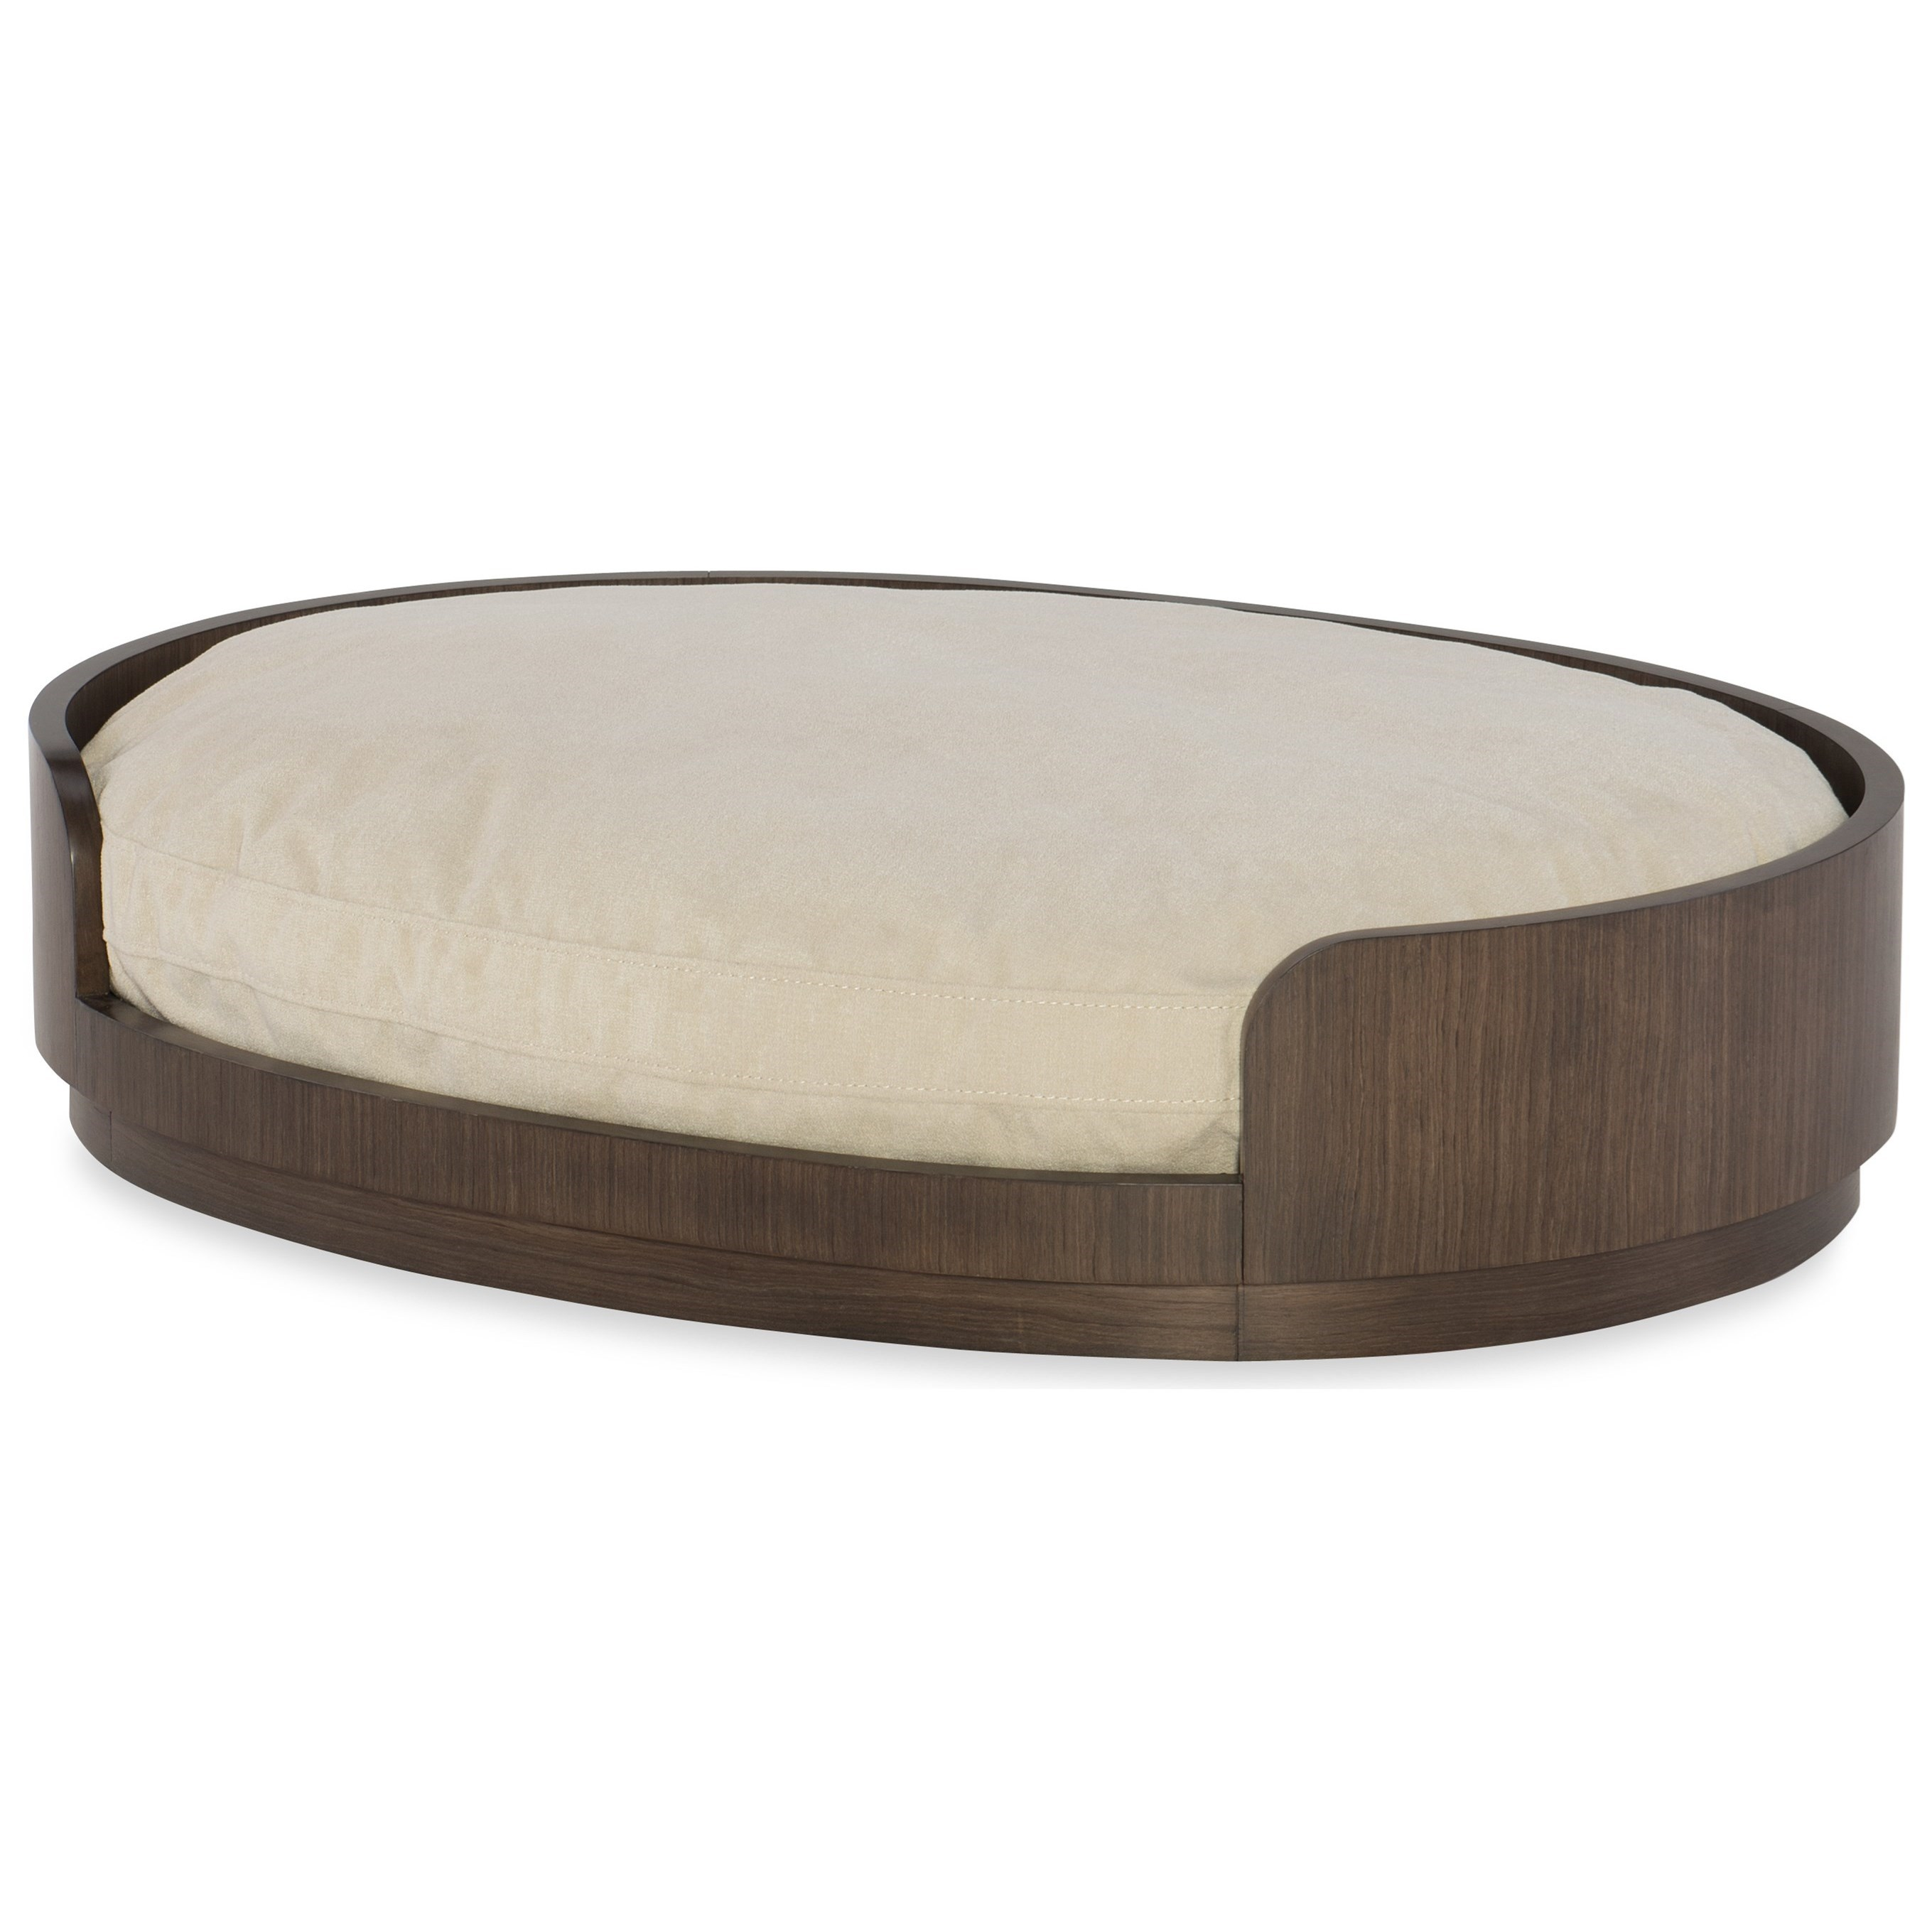 Rachael Ray Home by Legacy Classic Soho Dog Bed - Item Number: 6020-600